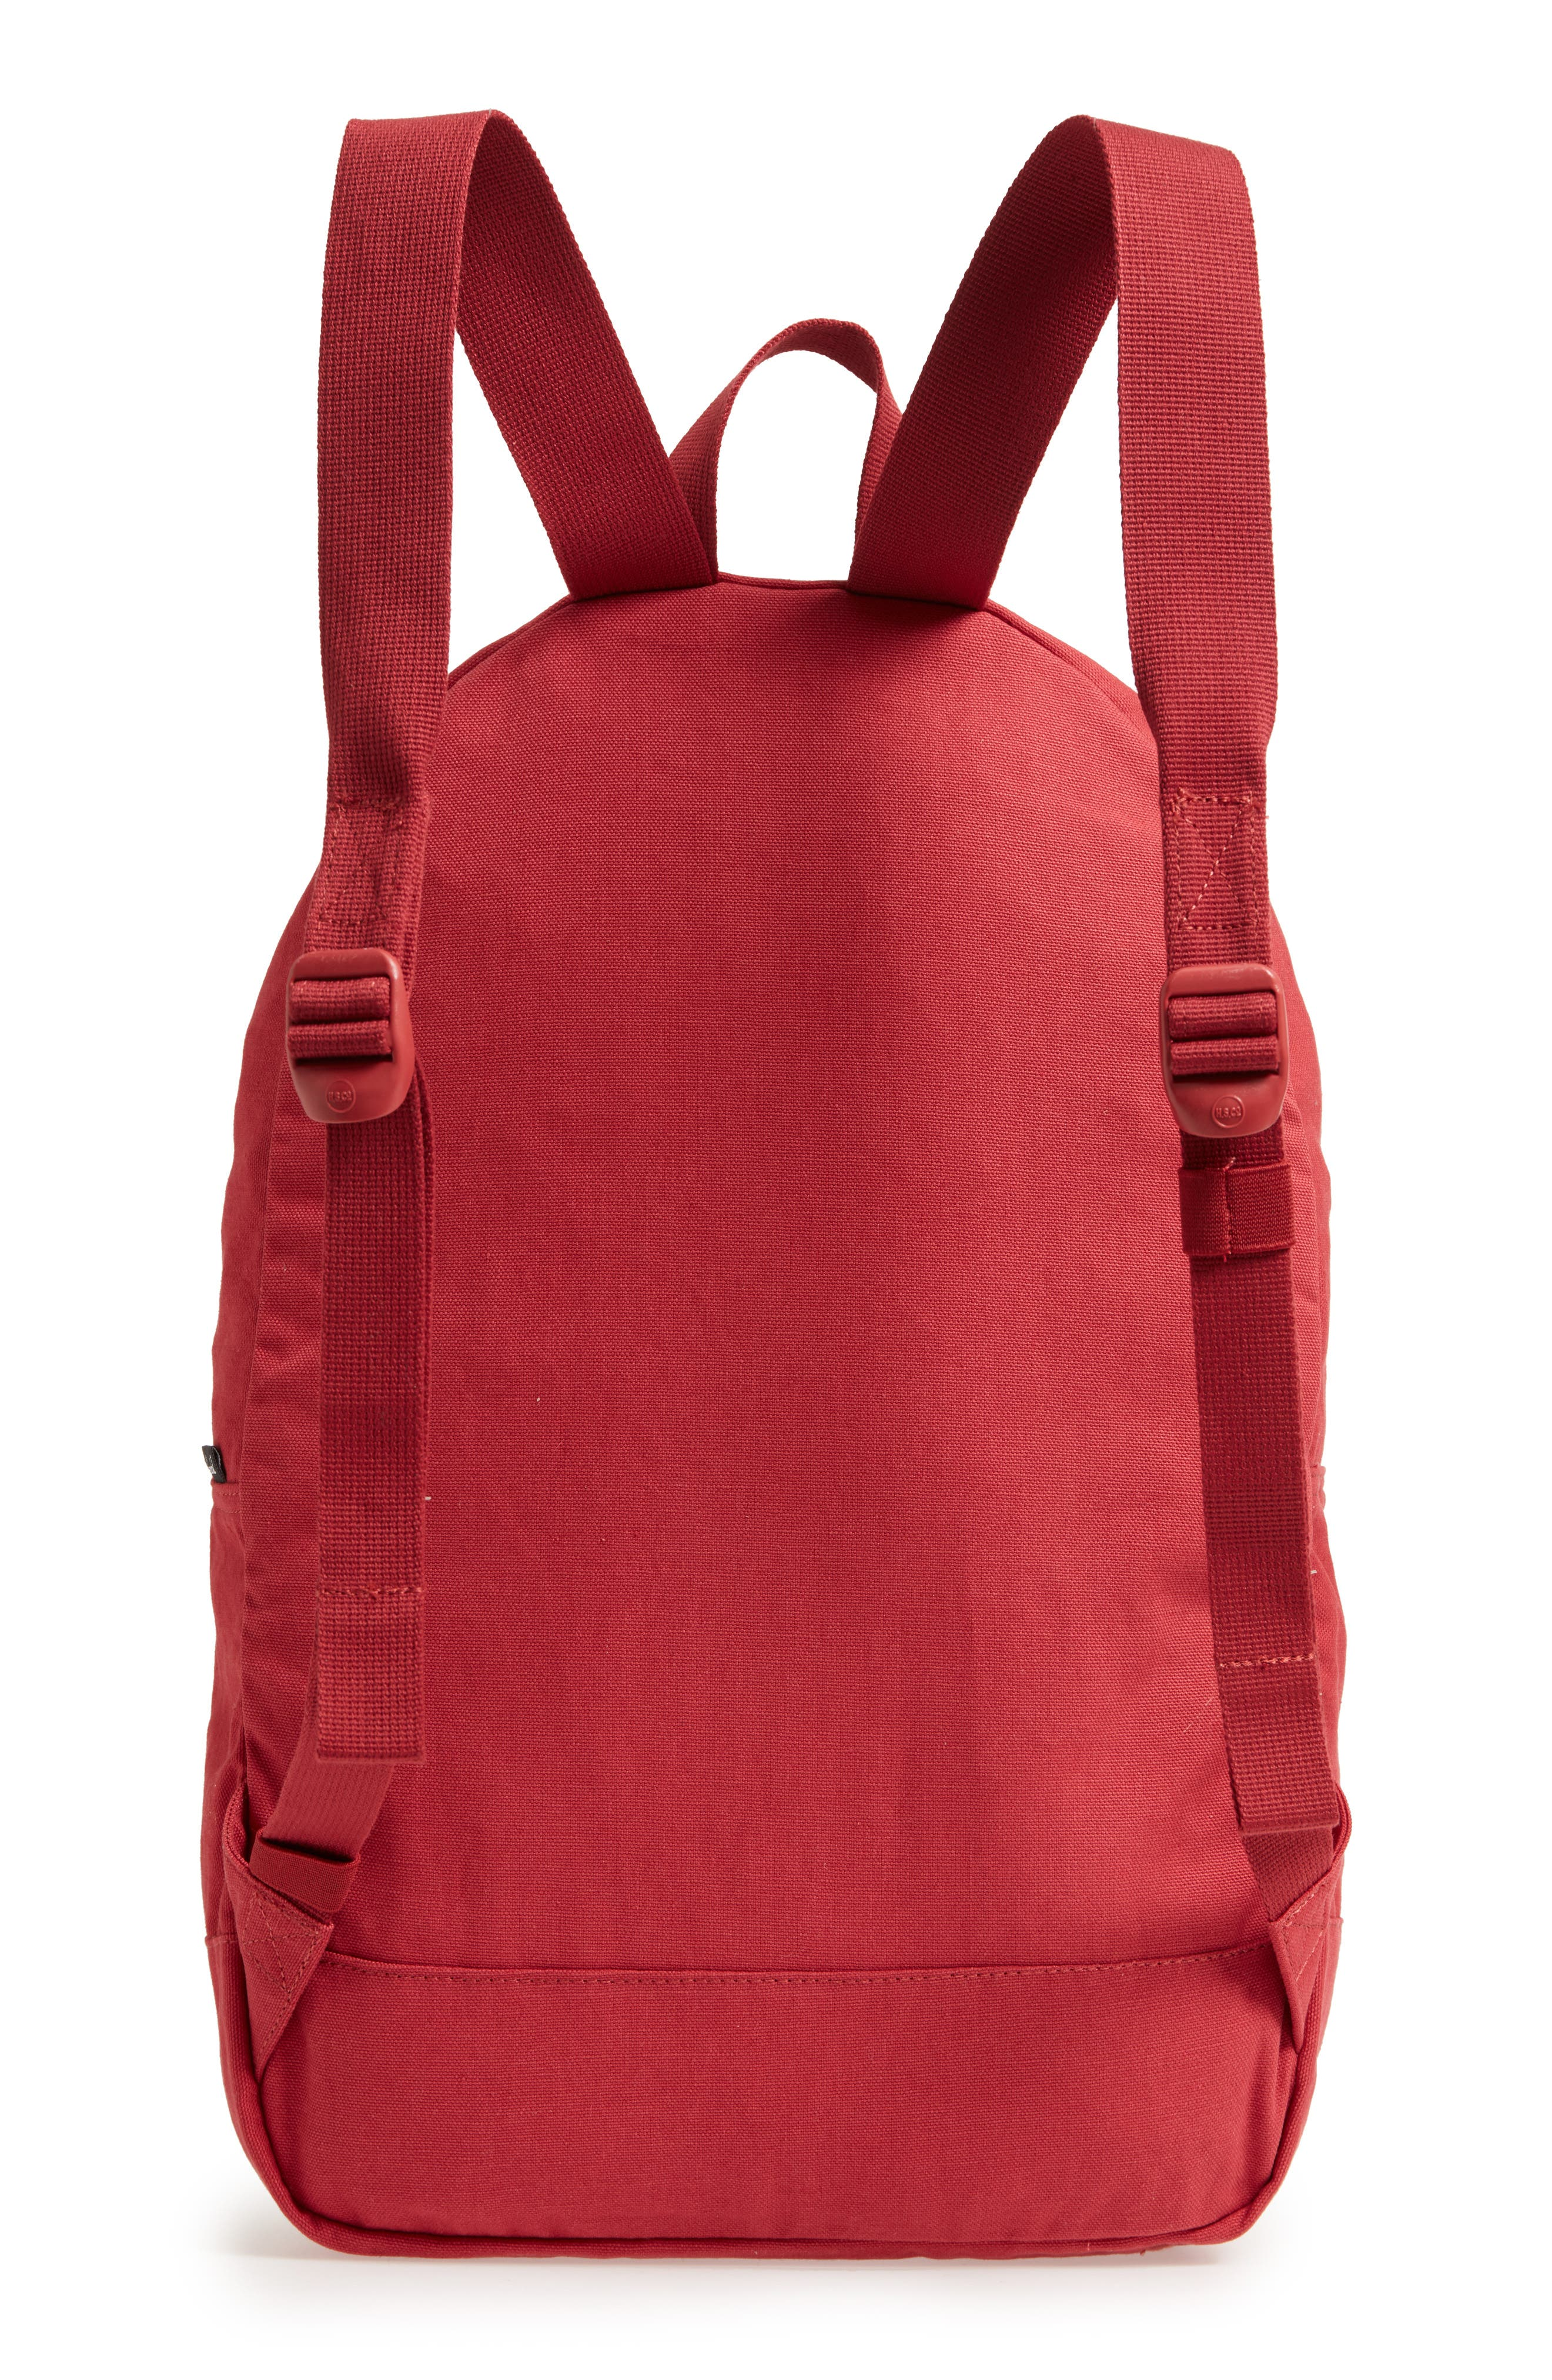 Cotton Casuals Daypack Backpack,                             Alternate thumbnail 21, color,